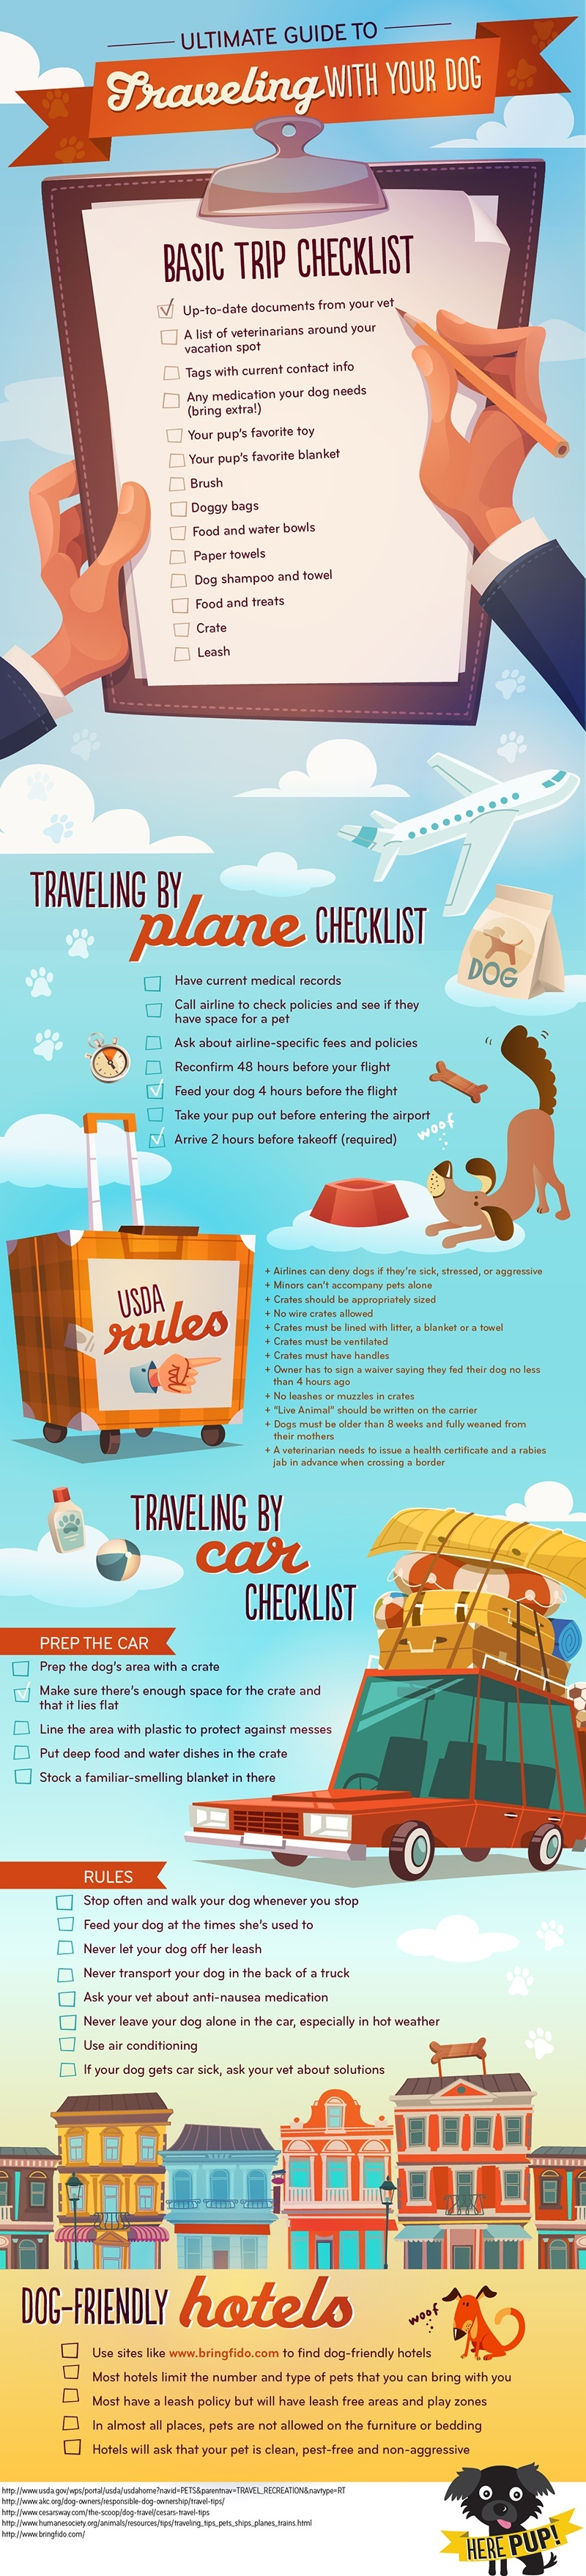 How to Travel with Your Dog without Going Completely Insane